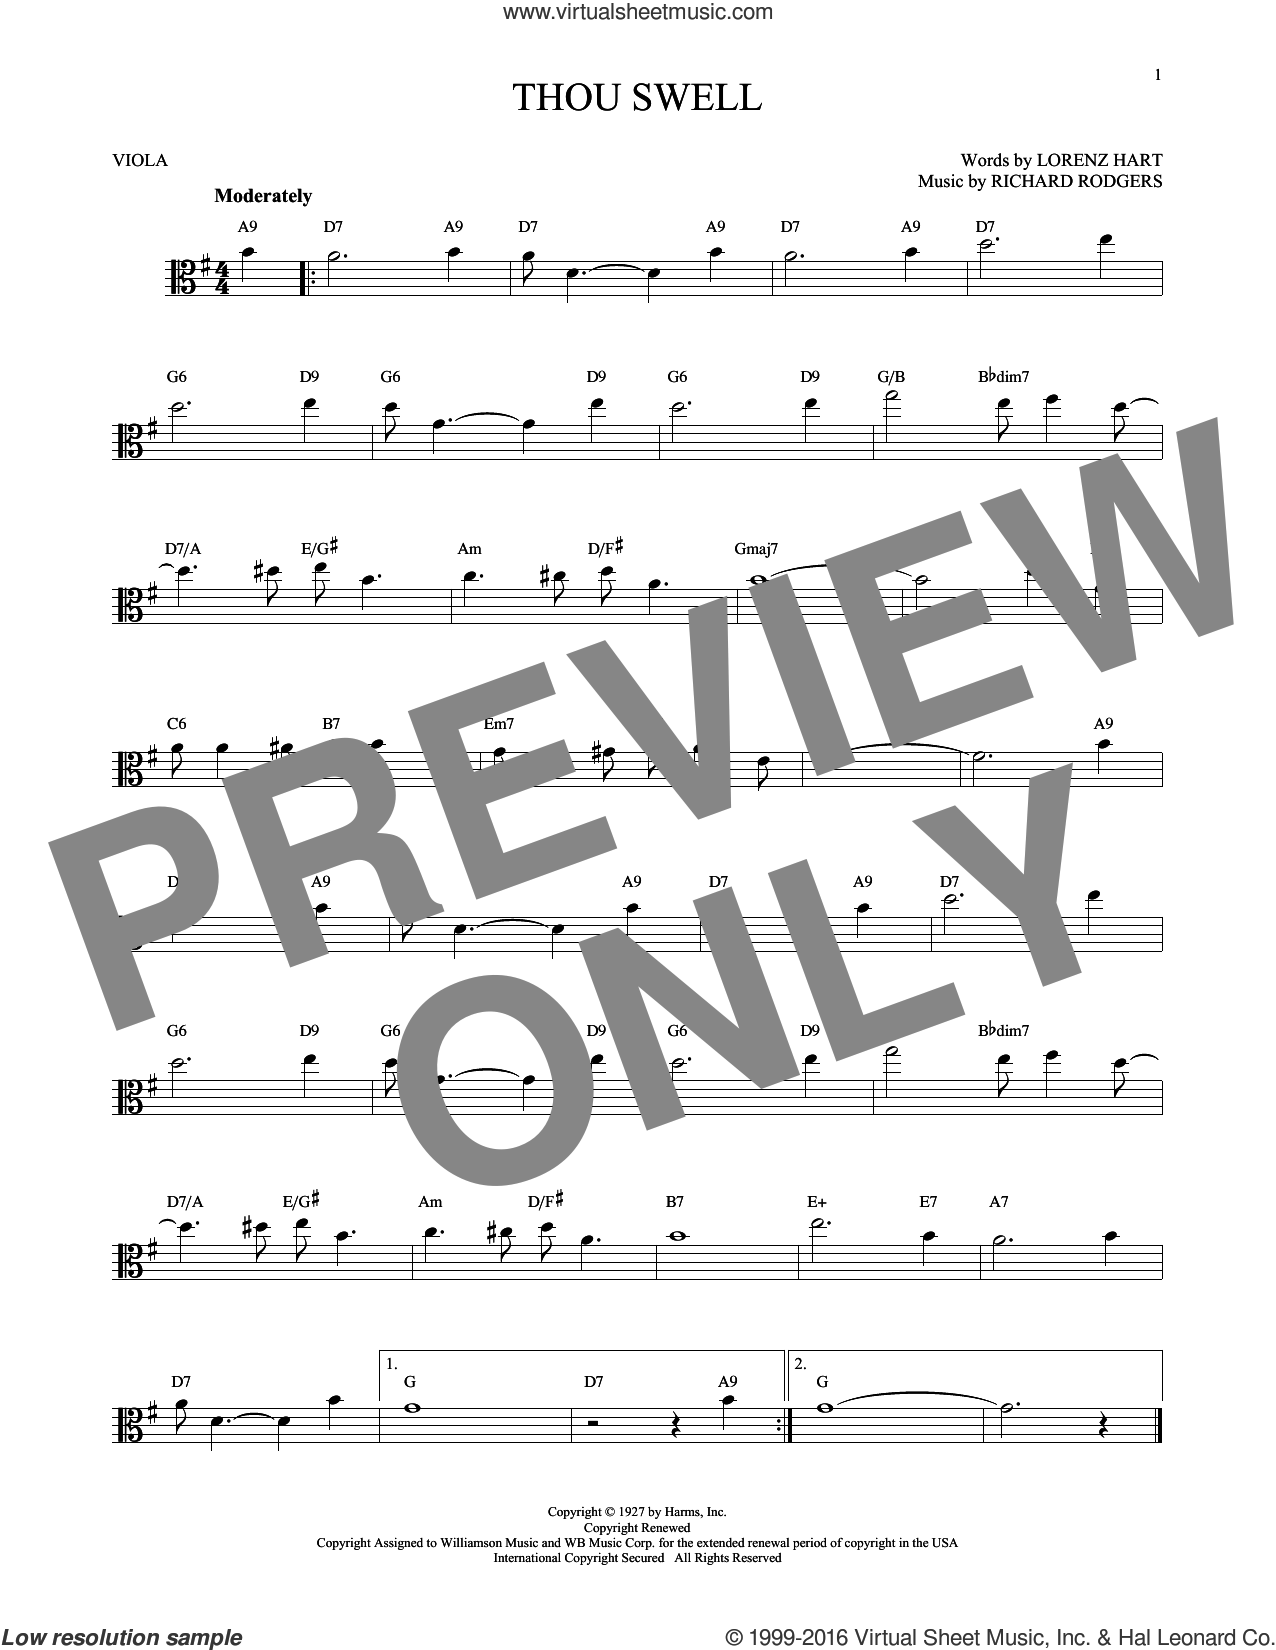 Thou Swell sheet music for viola solo by Rodgers & Hart, Lorenz Hart and Richard Rodgers, intermediate skill level